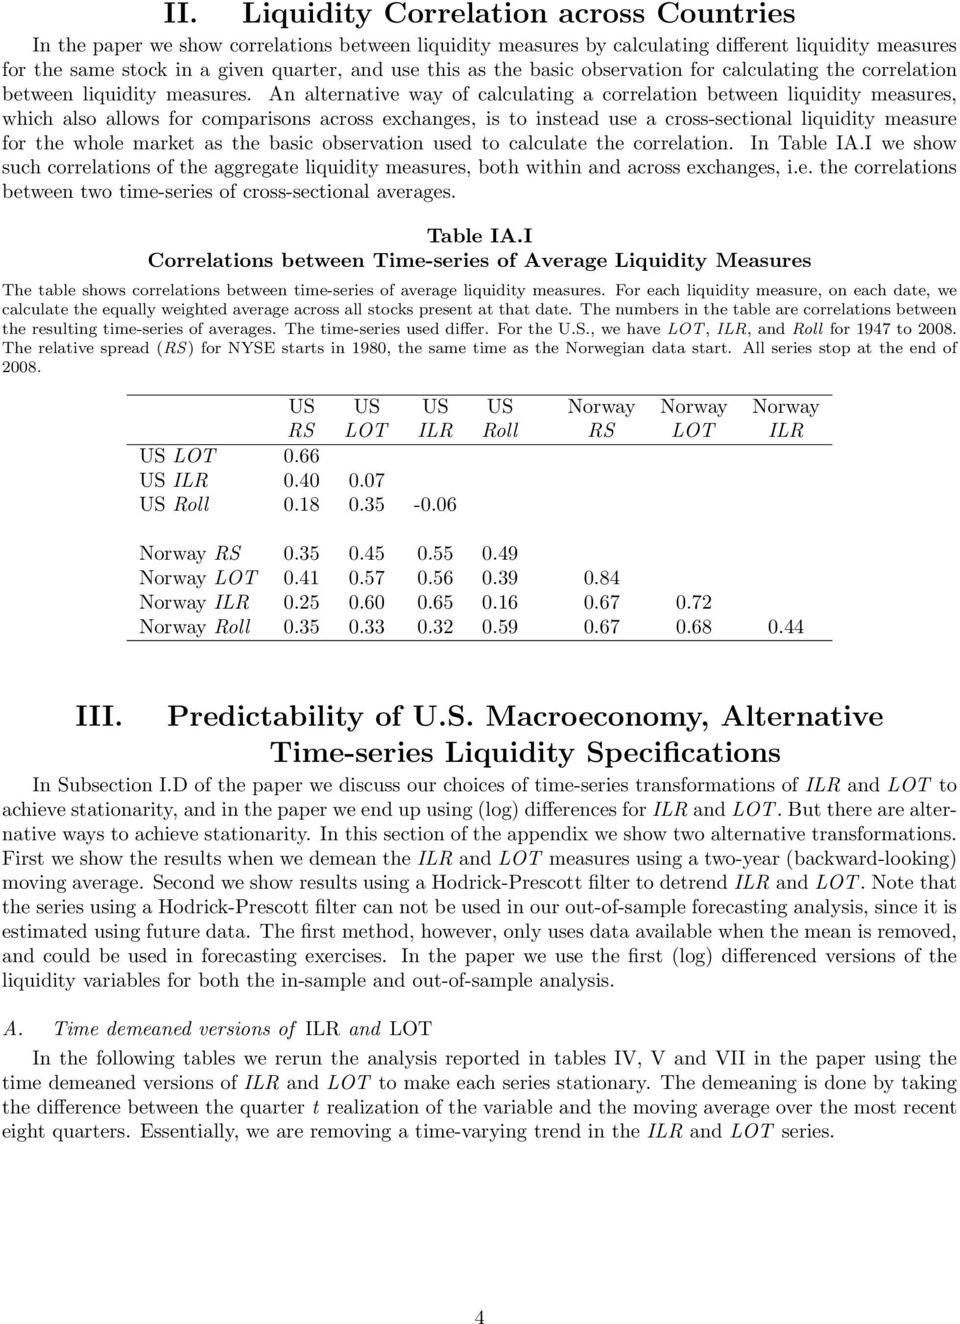 An alternative way of calculating a correlation between liquidity measures, which also allows for comparisons across exchanges, is to instead use a cross-sectional liquidity measure for the whole